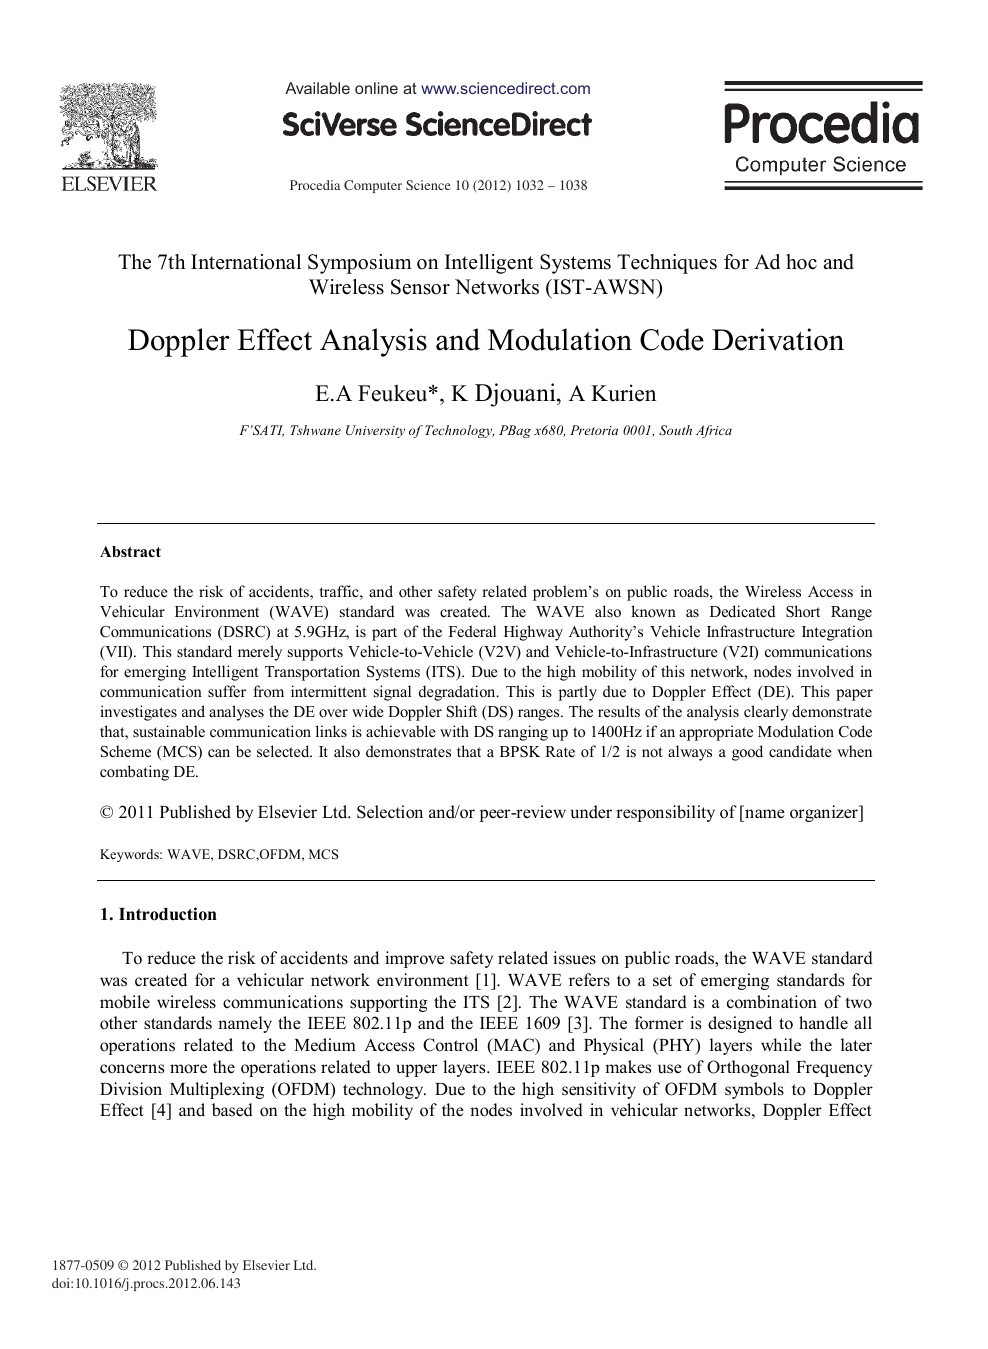 Doppler Effect Analysis and Modulation Code Derivation – topic of